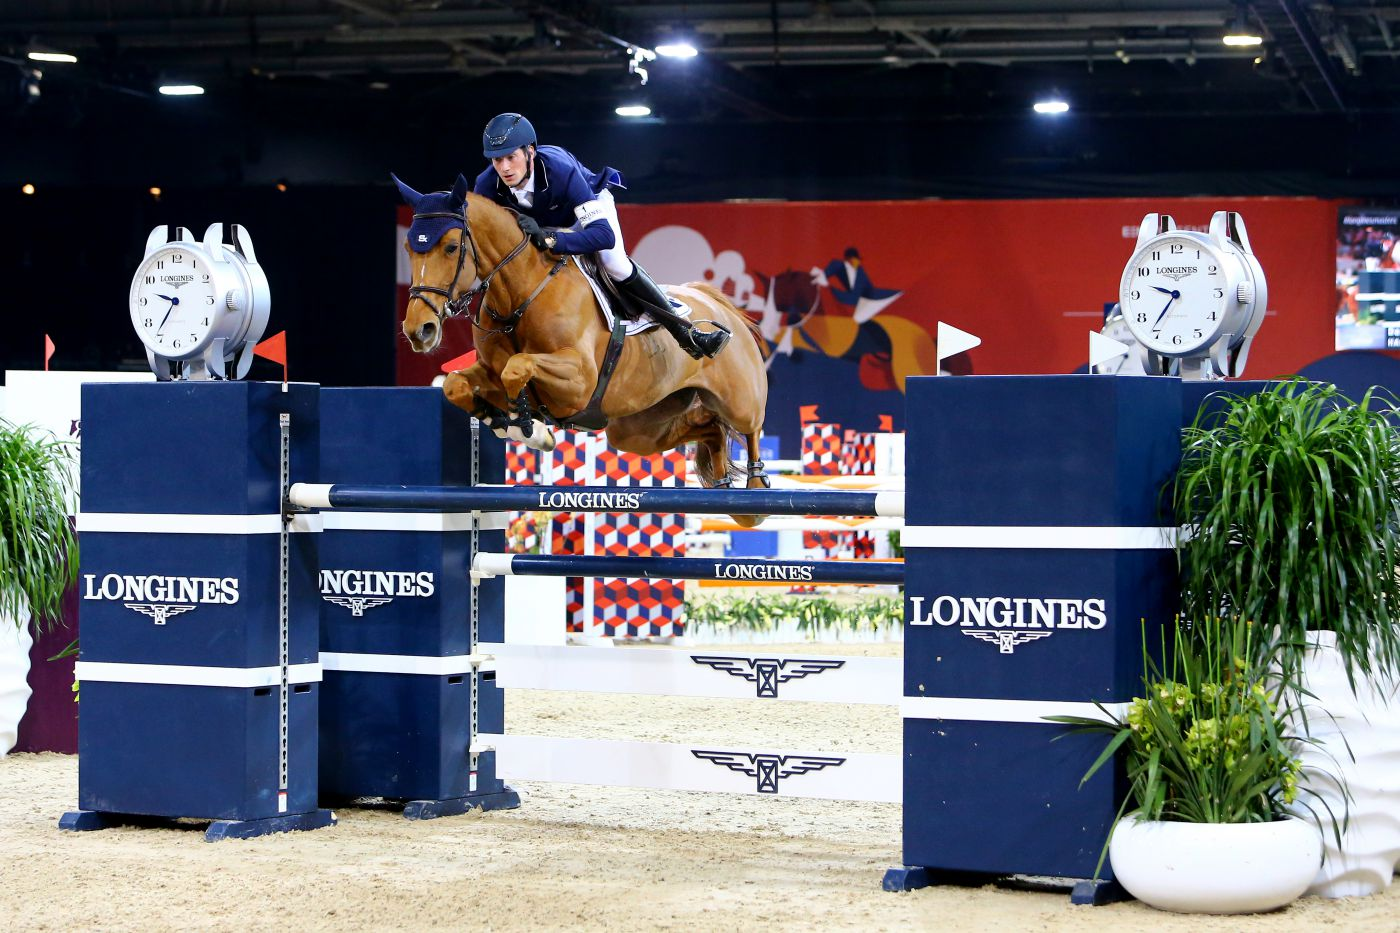 Longines Show Jumping Event: Thrilling emotions during the Longines Speed Challenge, which saw the victory of Daniel Deusser 5